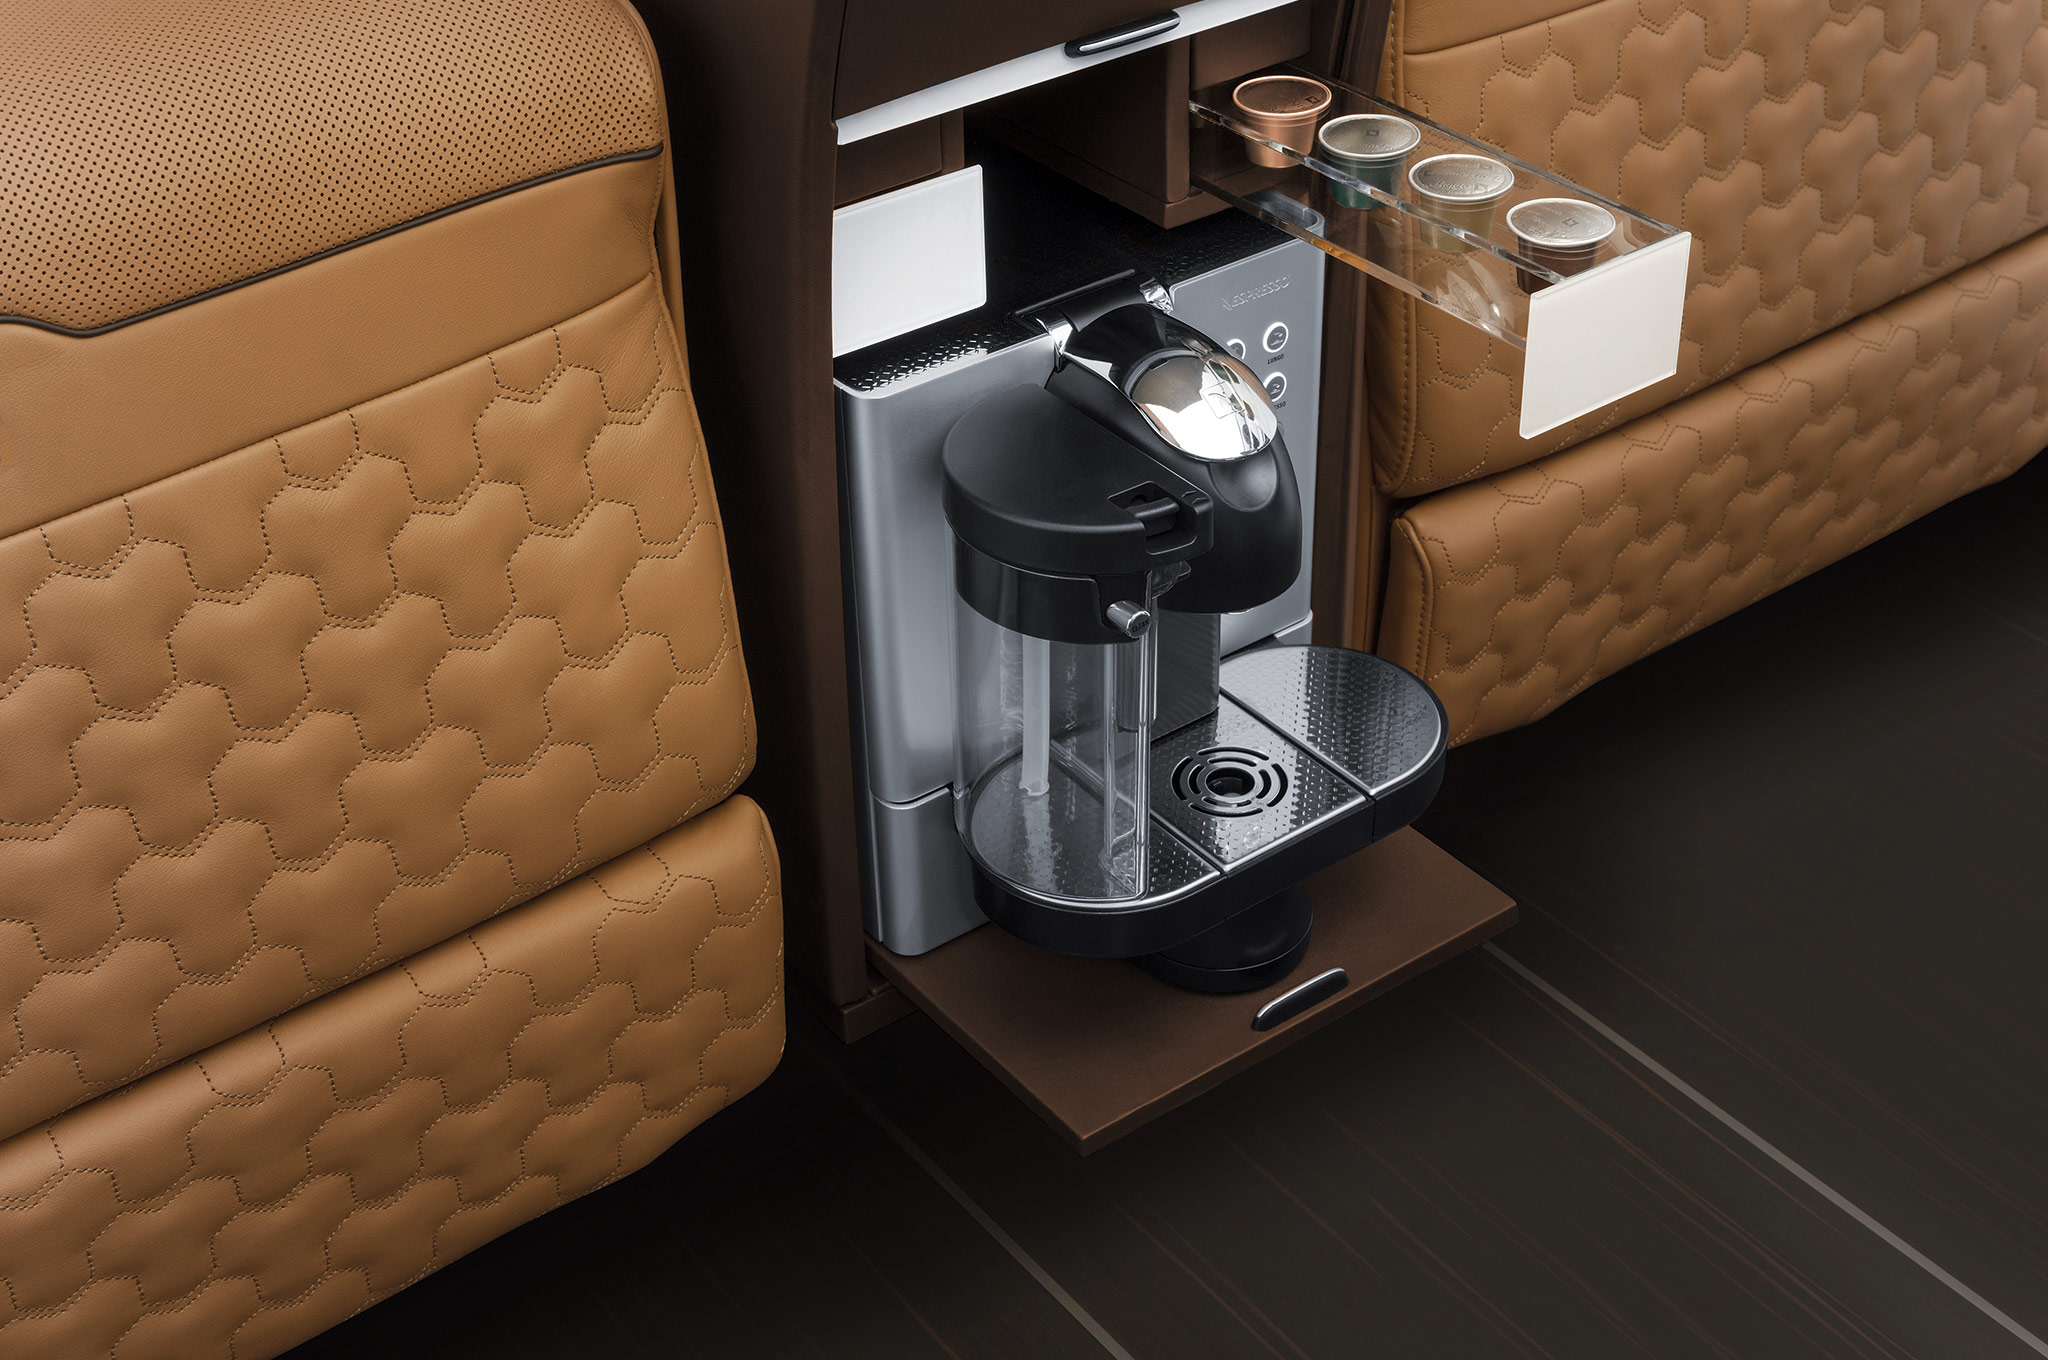 ' ' from the web at 'http://st.automobilemag.com/uploads/sites/11/2014/08/Brabus-Mercedes-Benz-Sprinter-Business-Lounge-coffee-machine.jpg'